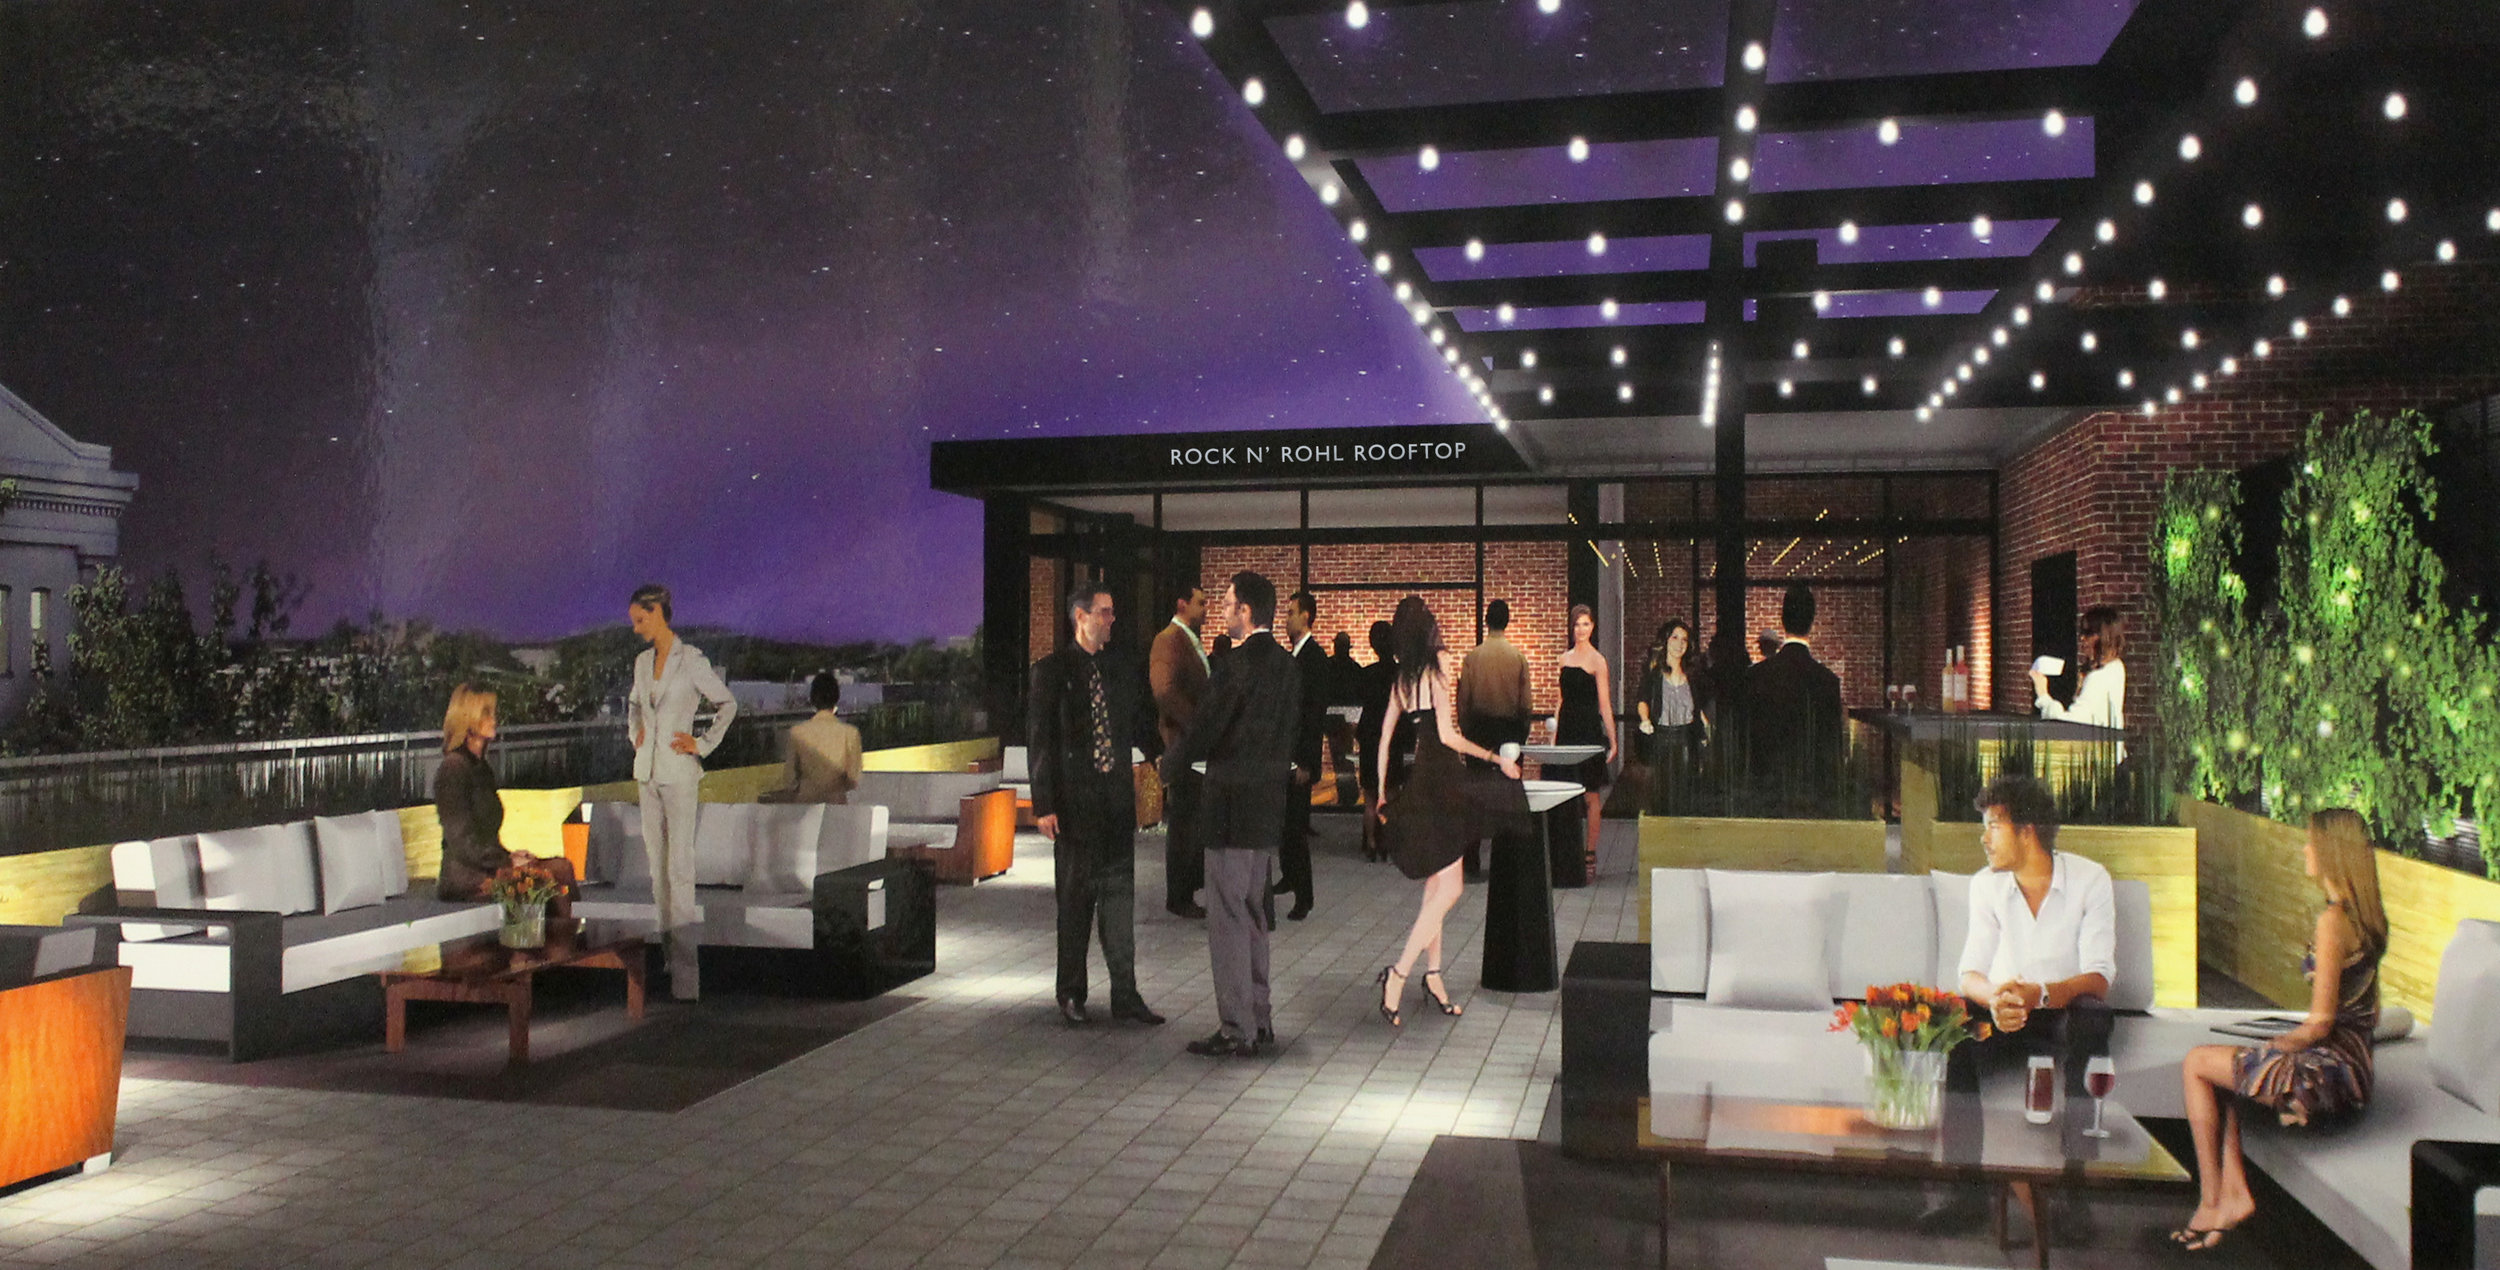 The Rock n' Rohl Rooftop Lounge